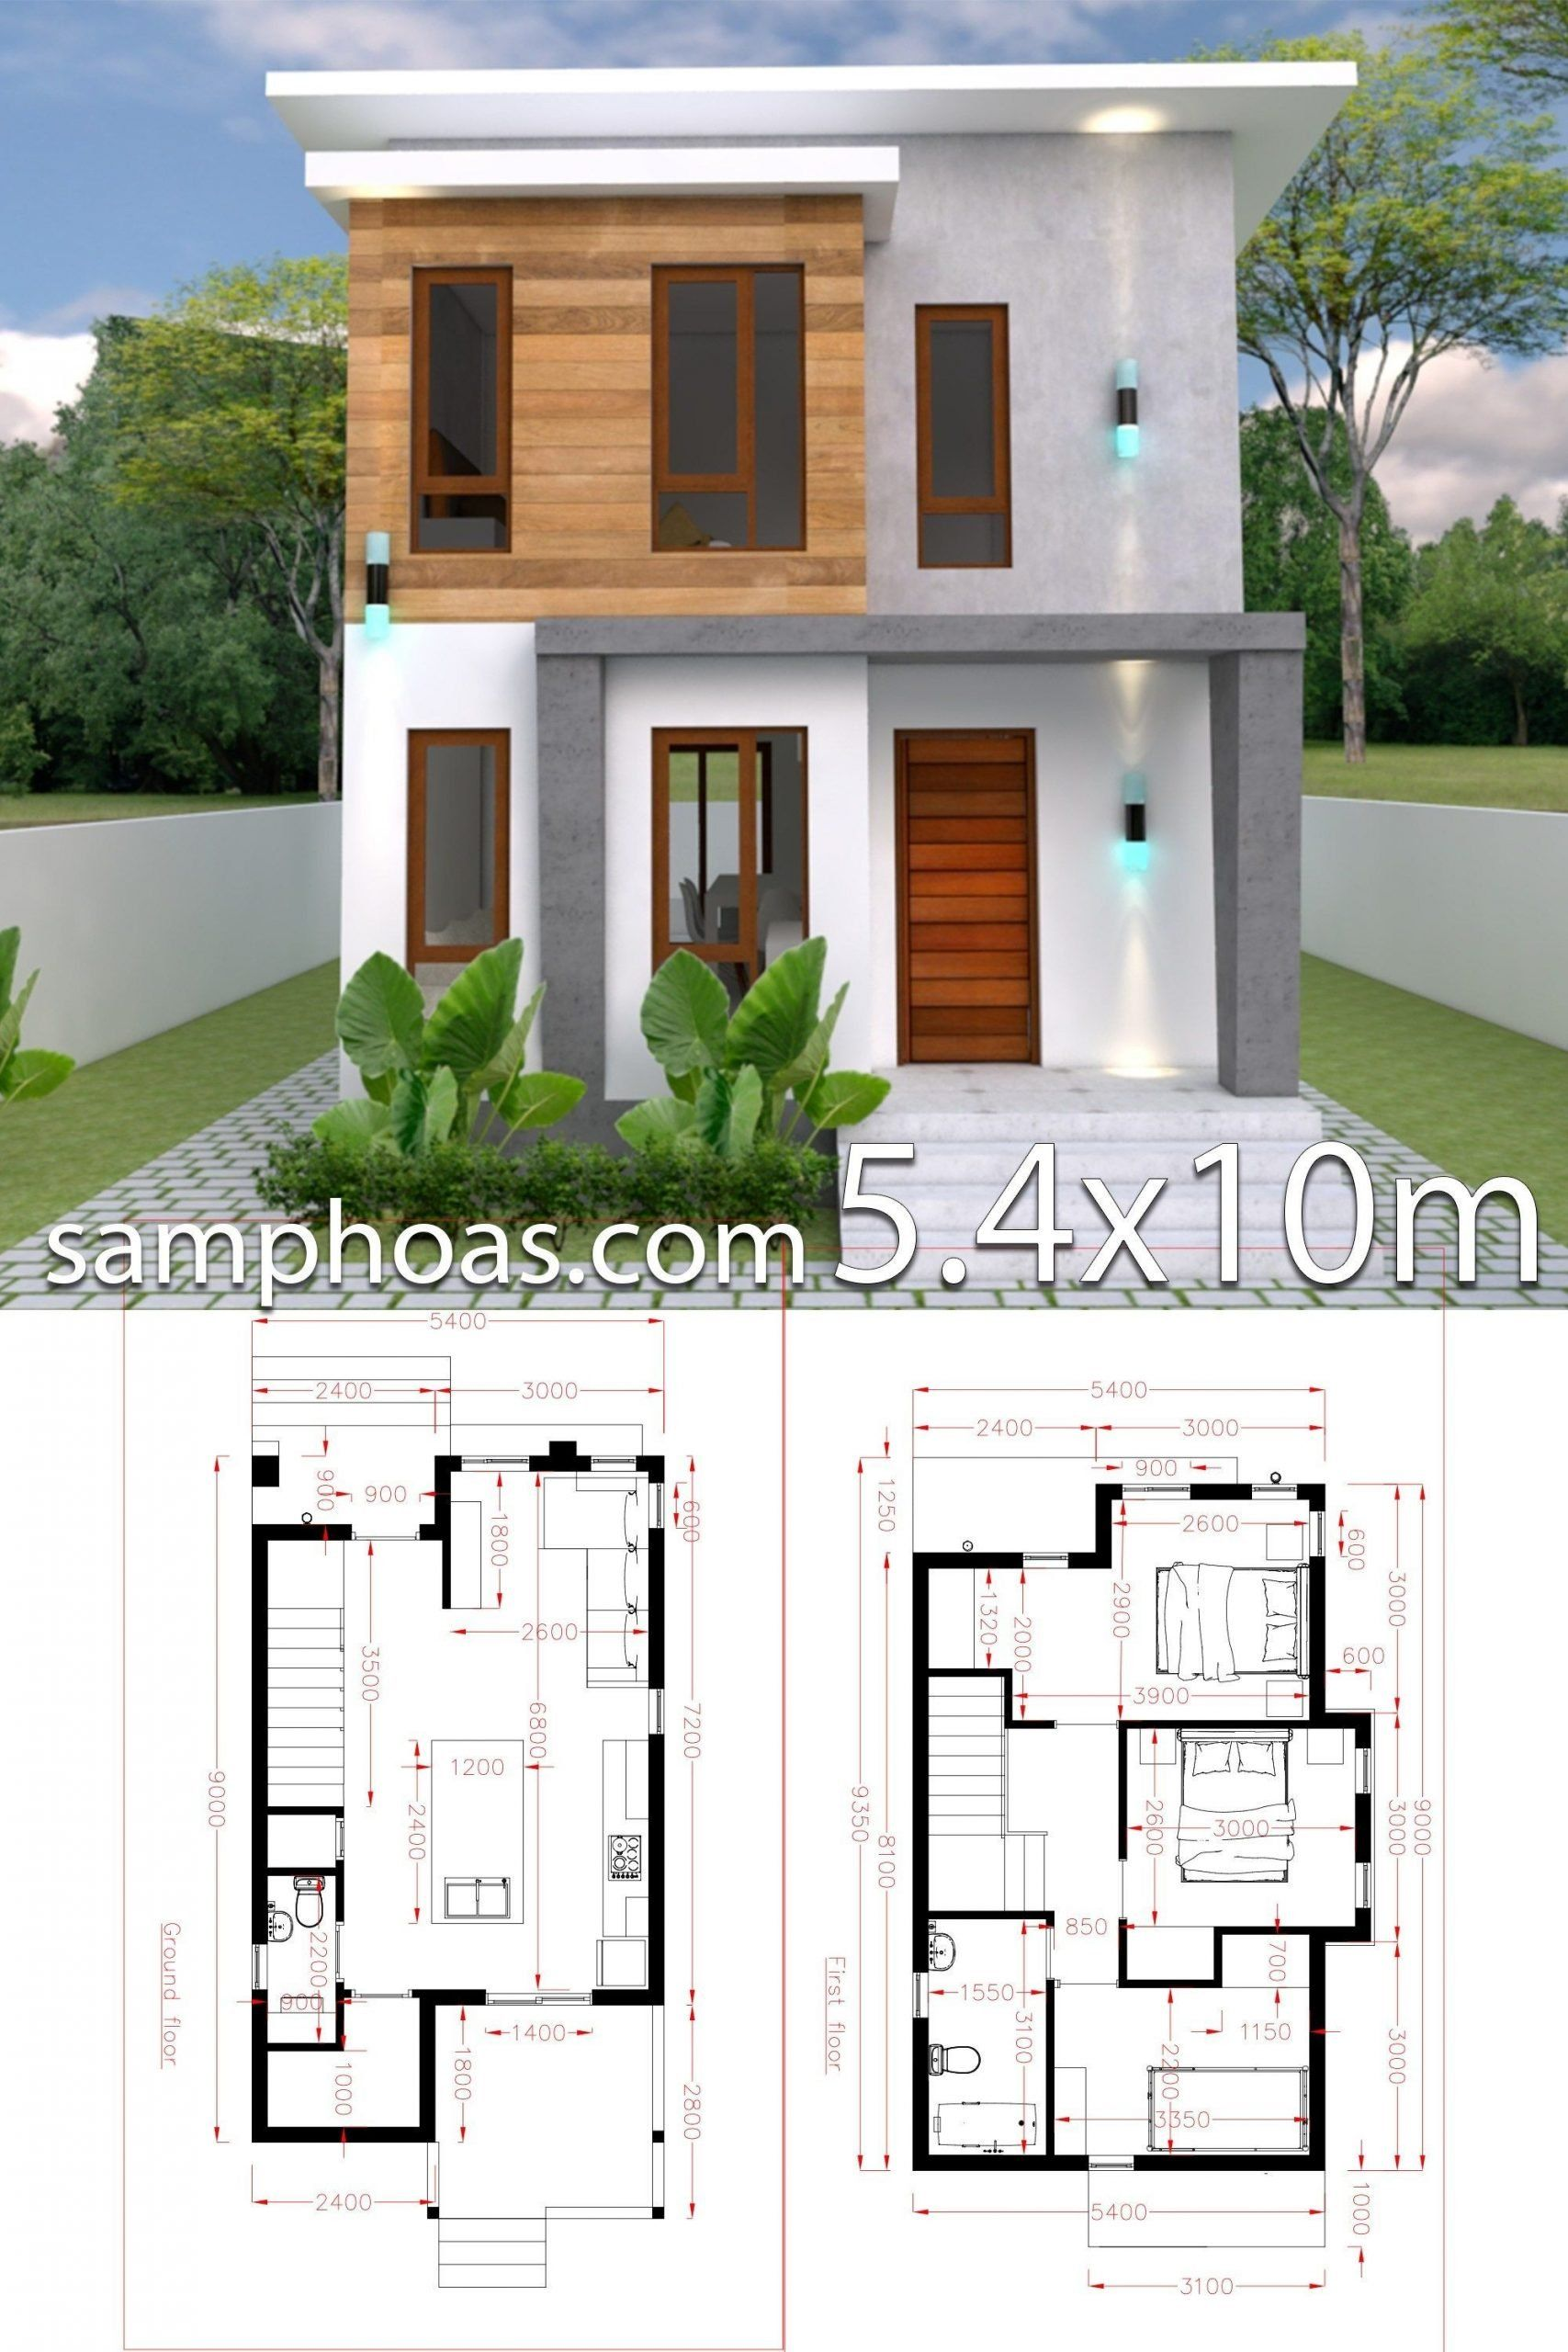 2 Story Small Modern House Designs Small Home Design Plan 5 4x10m With 3 Bedroom Simple House Design Small House Design Plans Model House Plan